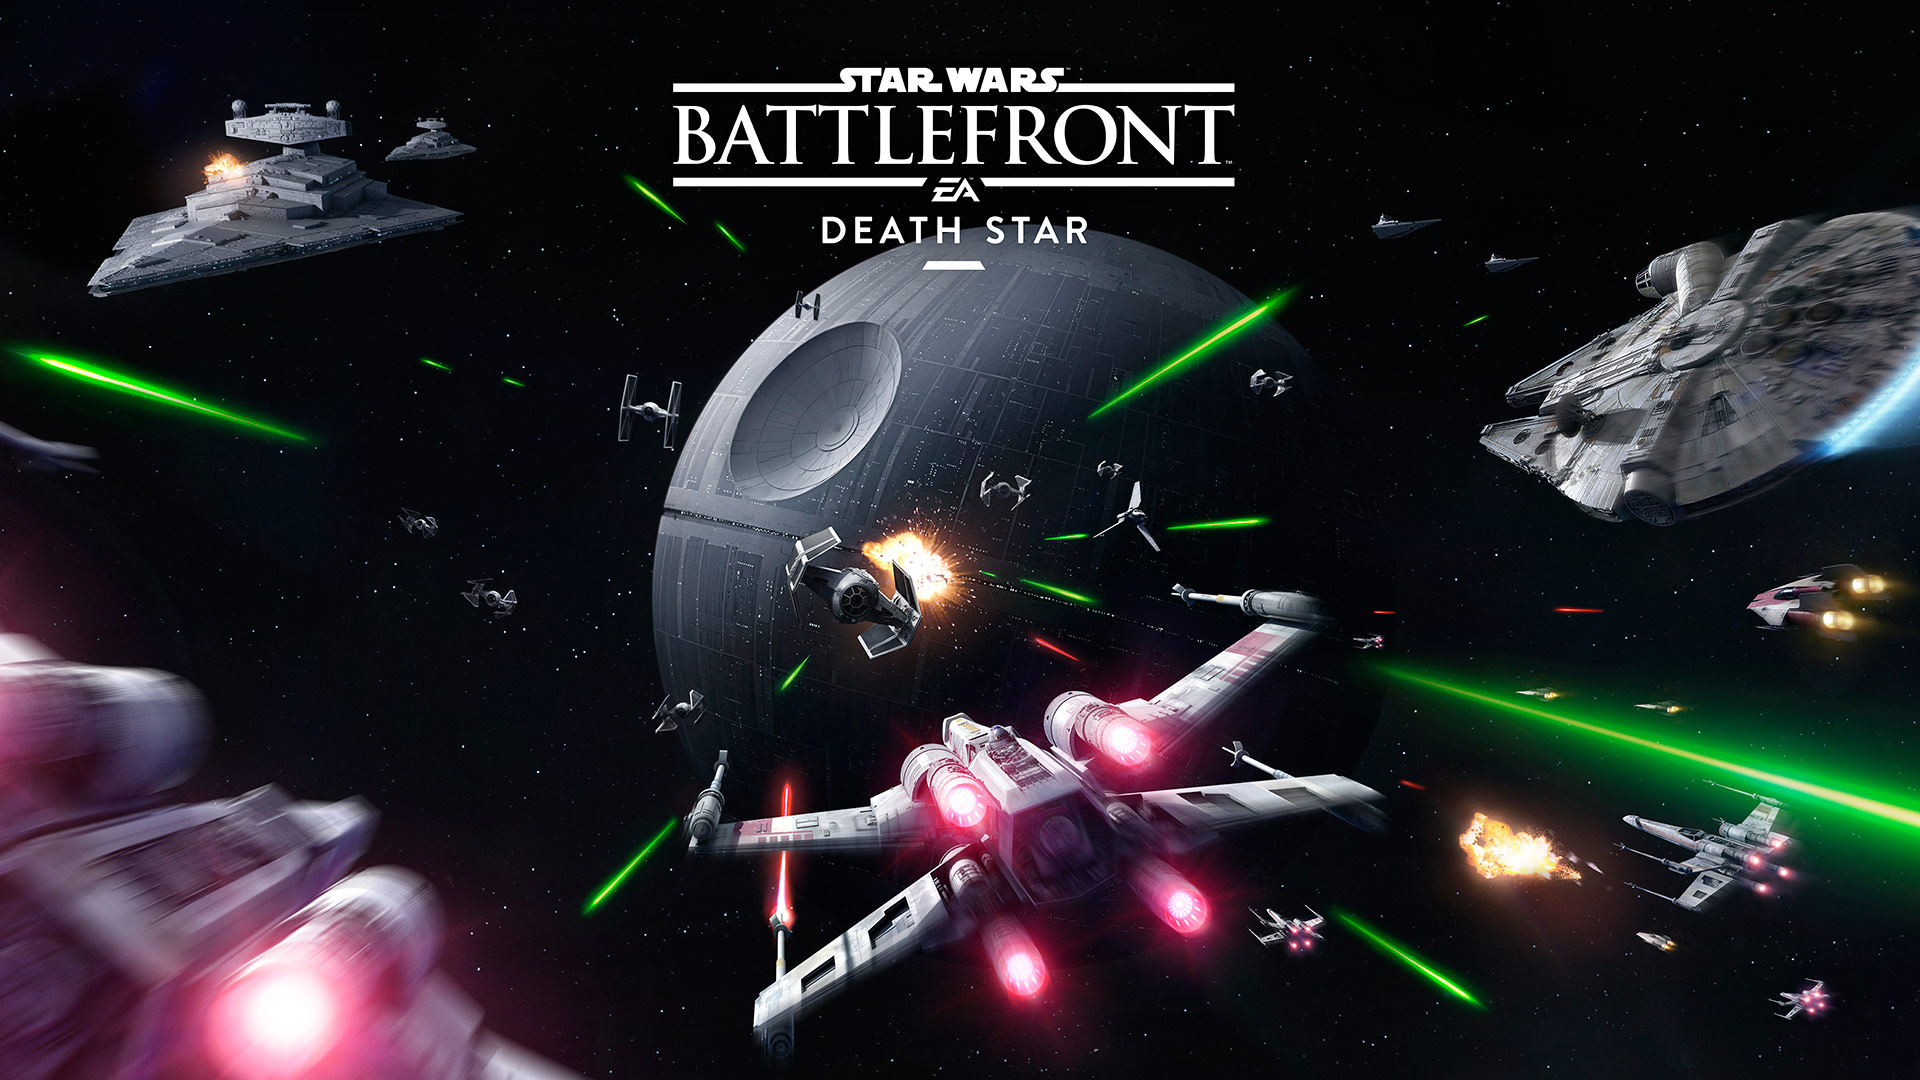 Star Wars Battlefront Death Star Expansion Details Announced At Star Wars Celebration